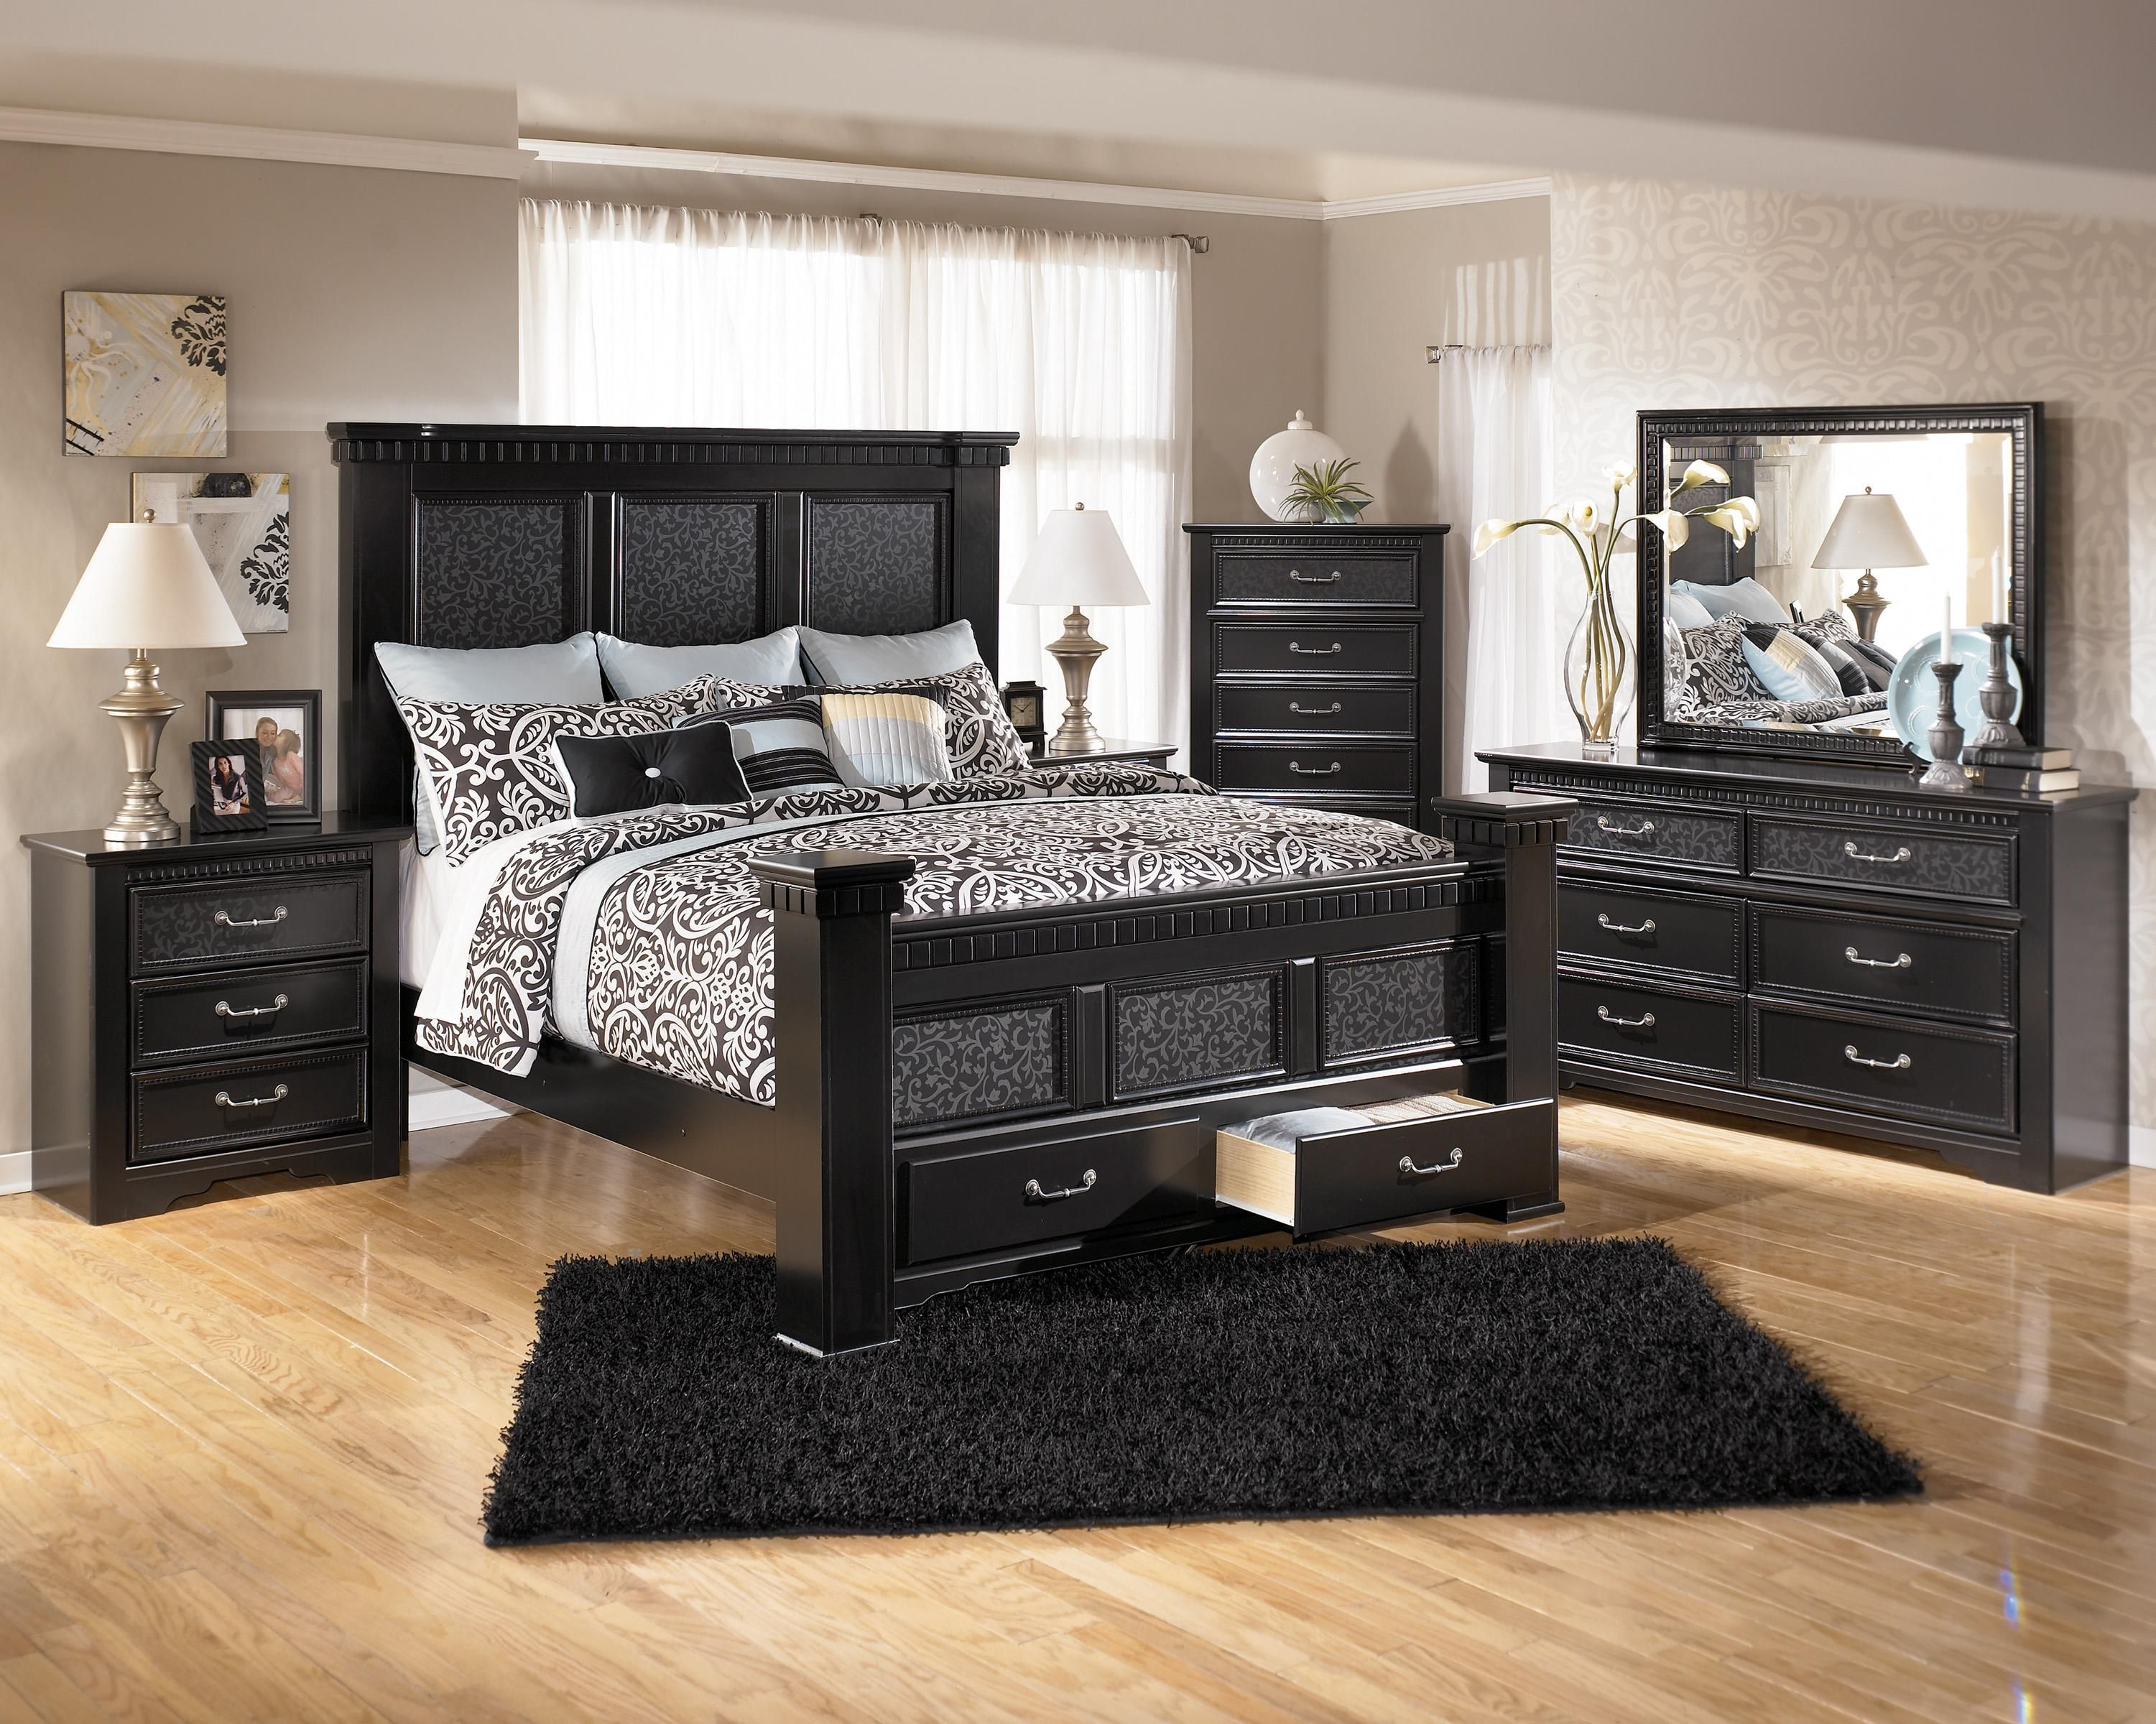 Ashley Furniture Cavallino Bedroom Set With Mansion Poster Bed Storage Footboard Bed Only 799 95 Master Bedroom Set Black Bedroom Furniture Set Bedroom Sets